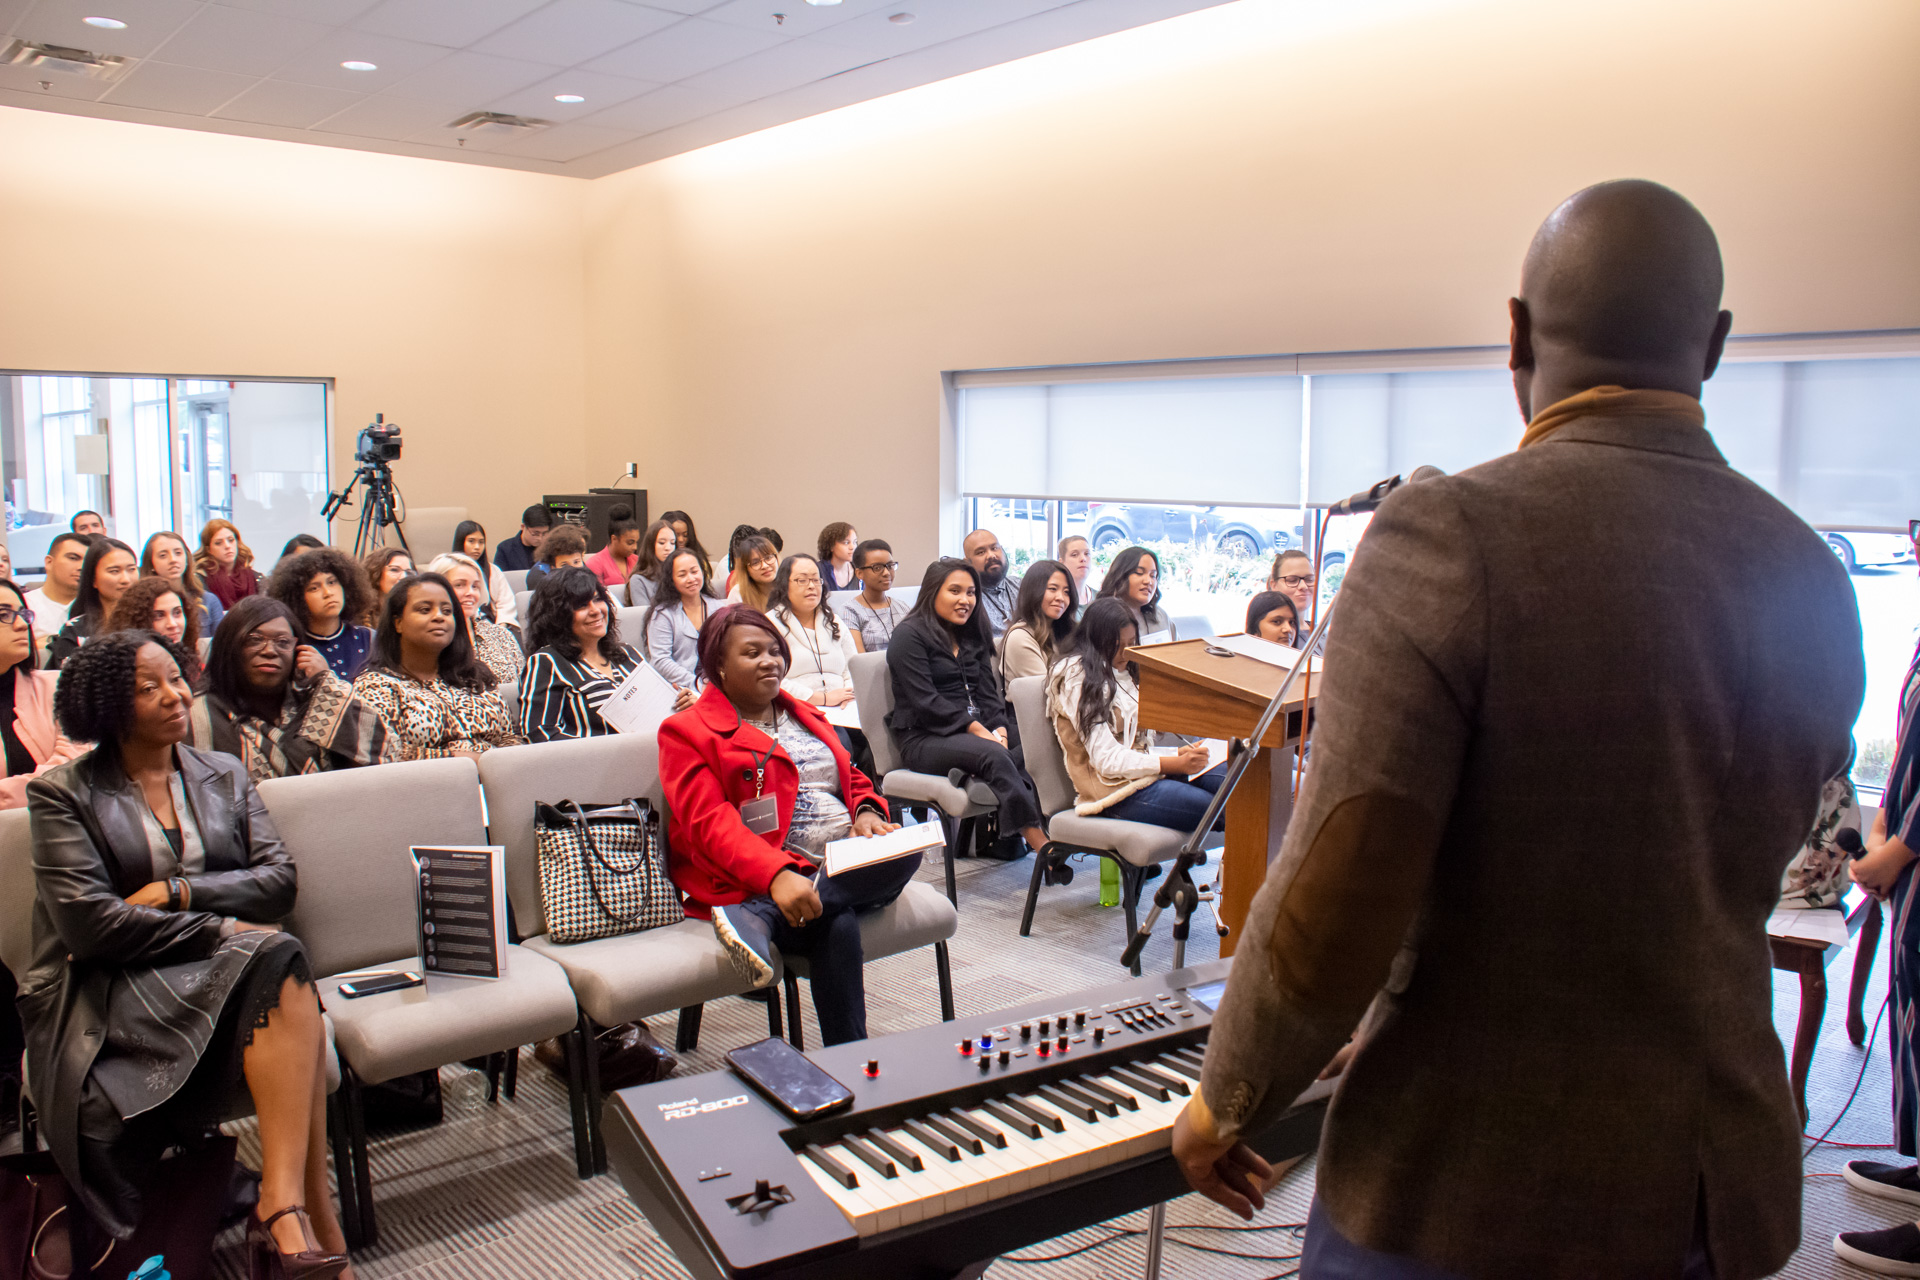 Session 1 - Vocal trainingIntermediate to Advanced KeysDrums In Worship 101Lead Guitar: Refine Your Skill & SoundsChurch Sound Technician Part 1